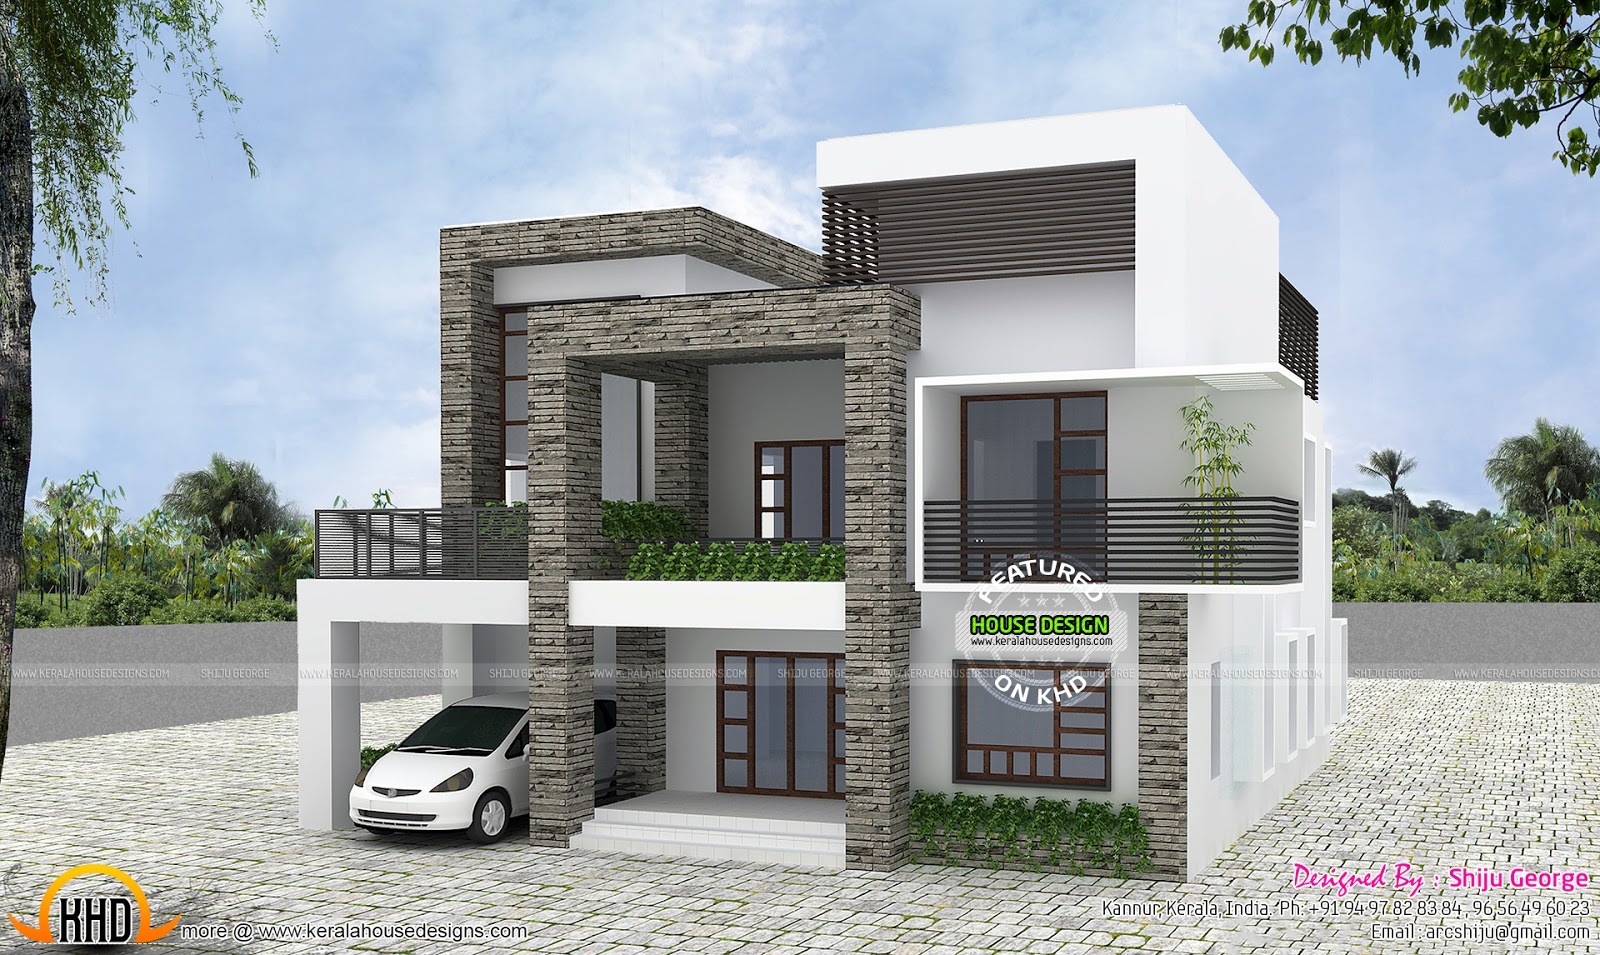 Contemporary house by shiju george kerala home design for Kerala home designs contemporary